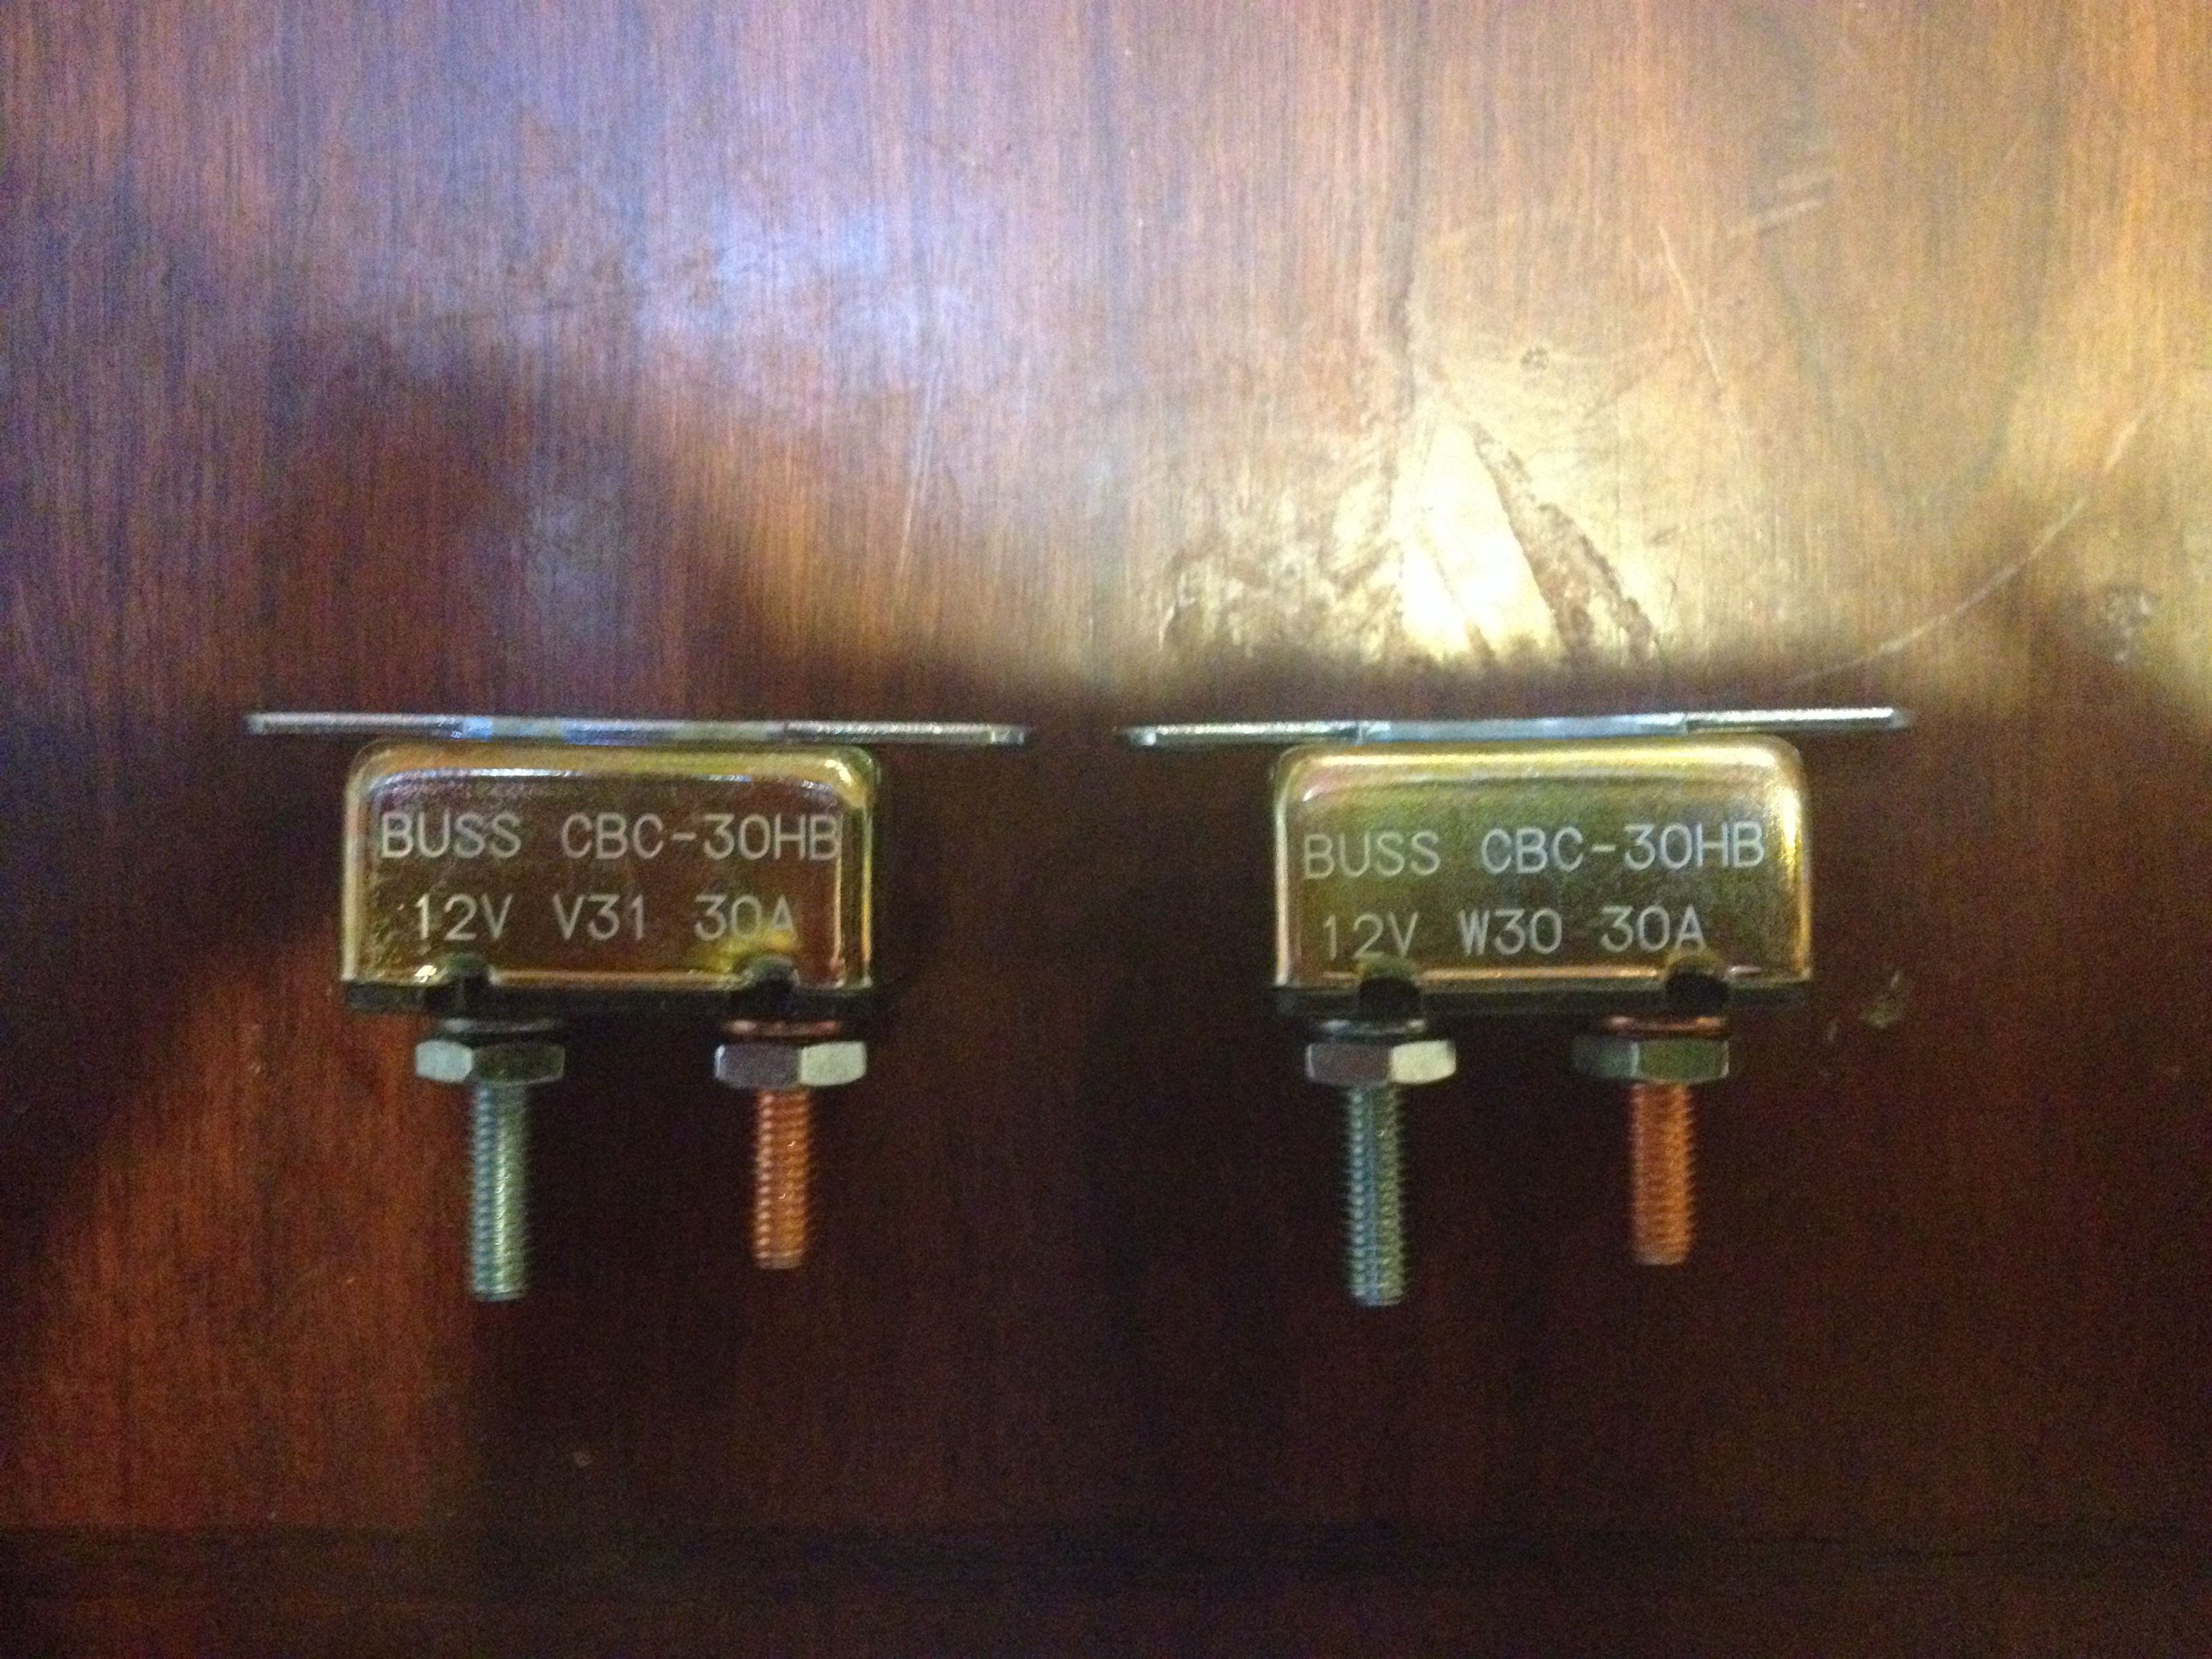 30 amp circuit breaker one for each light pair a 30 amp fuse can [ 3264 x 2448 Pixel ]